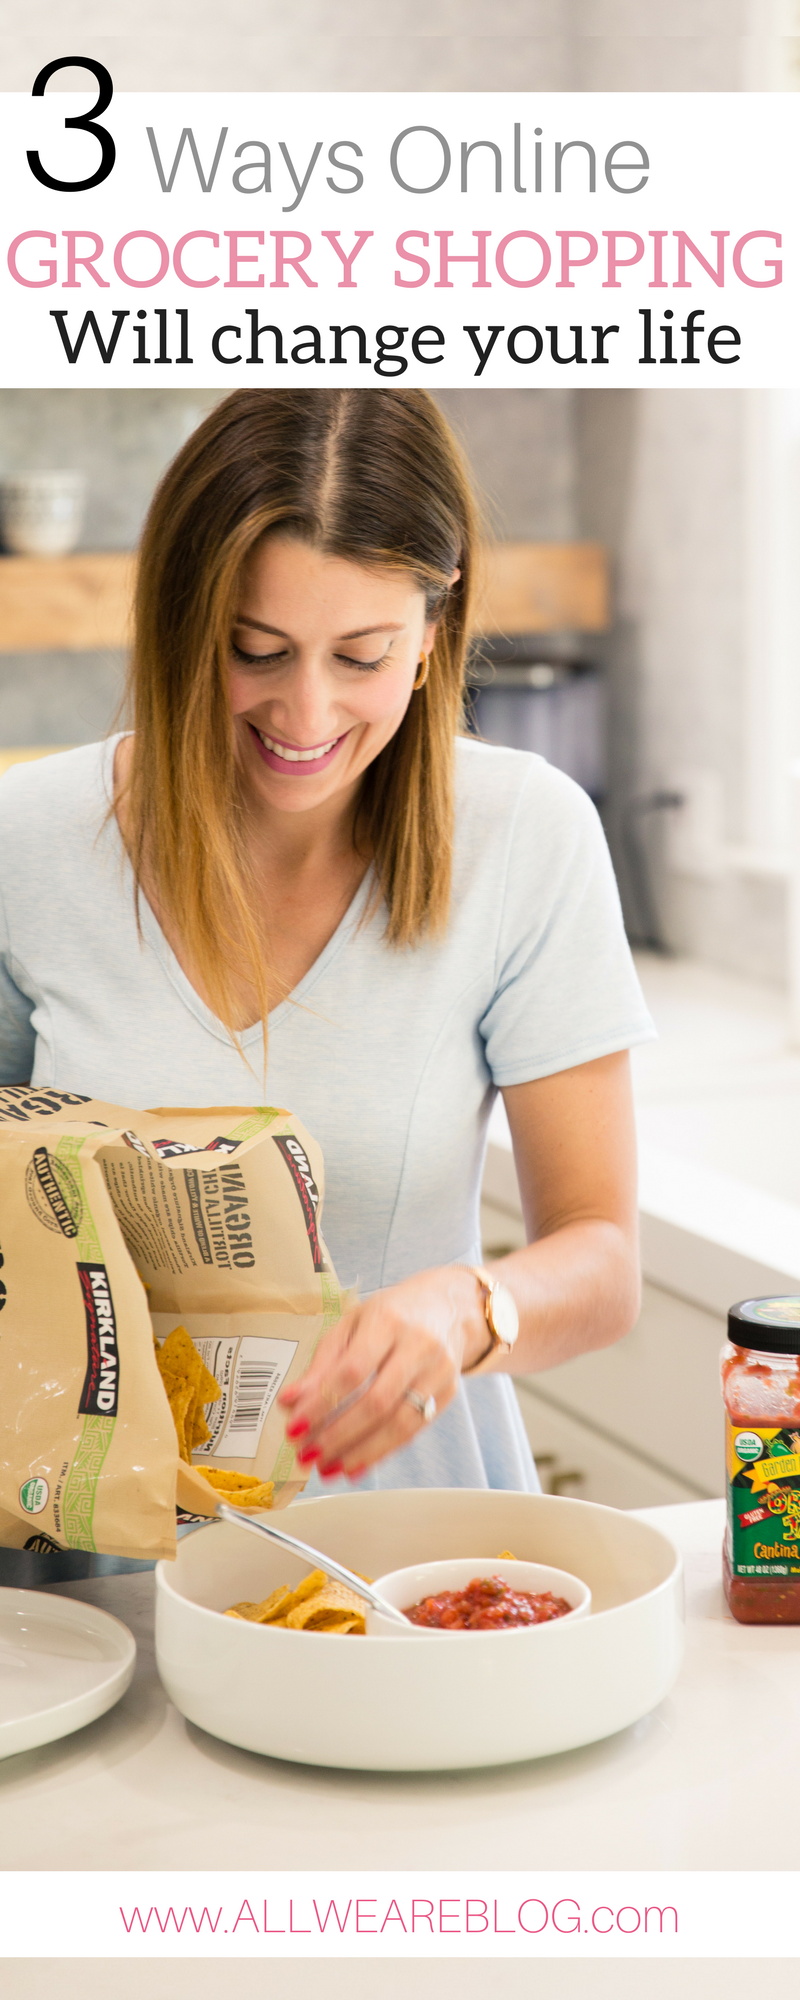 3 ways online grocery shopping will change your life